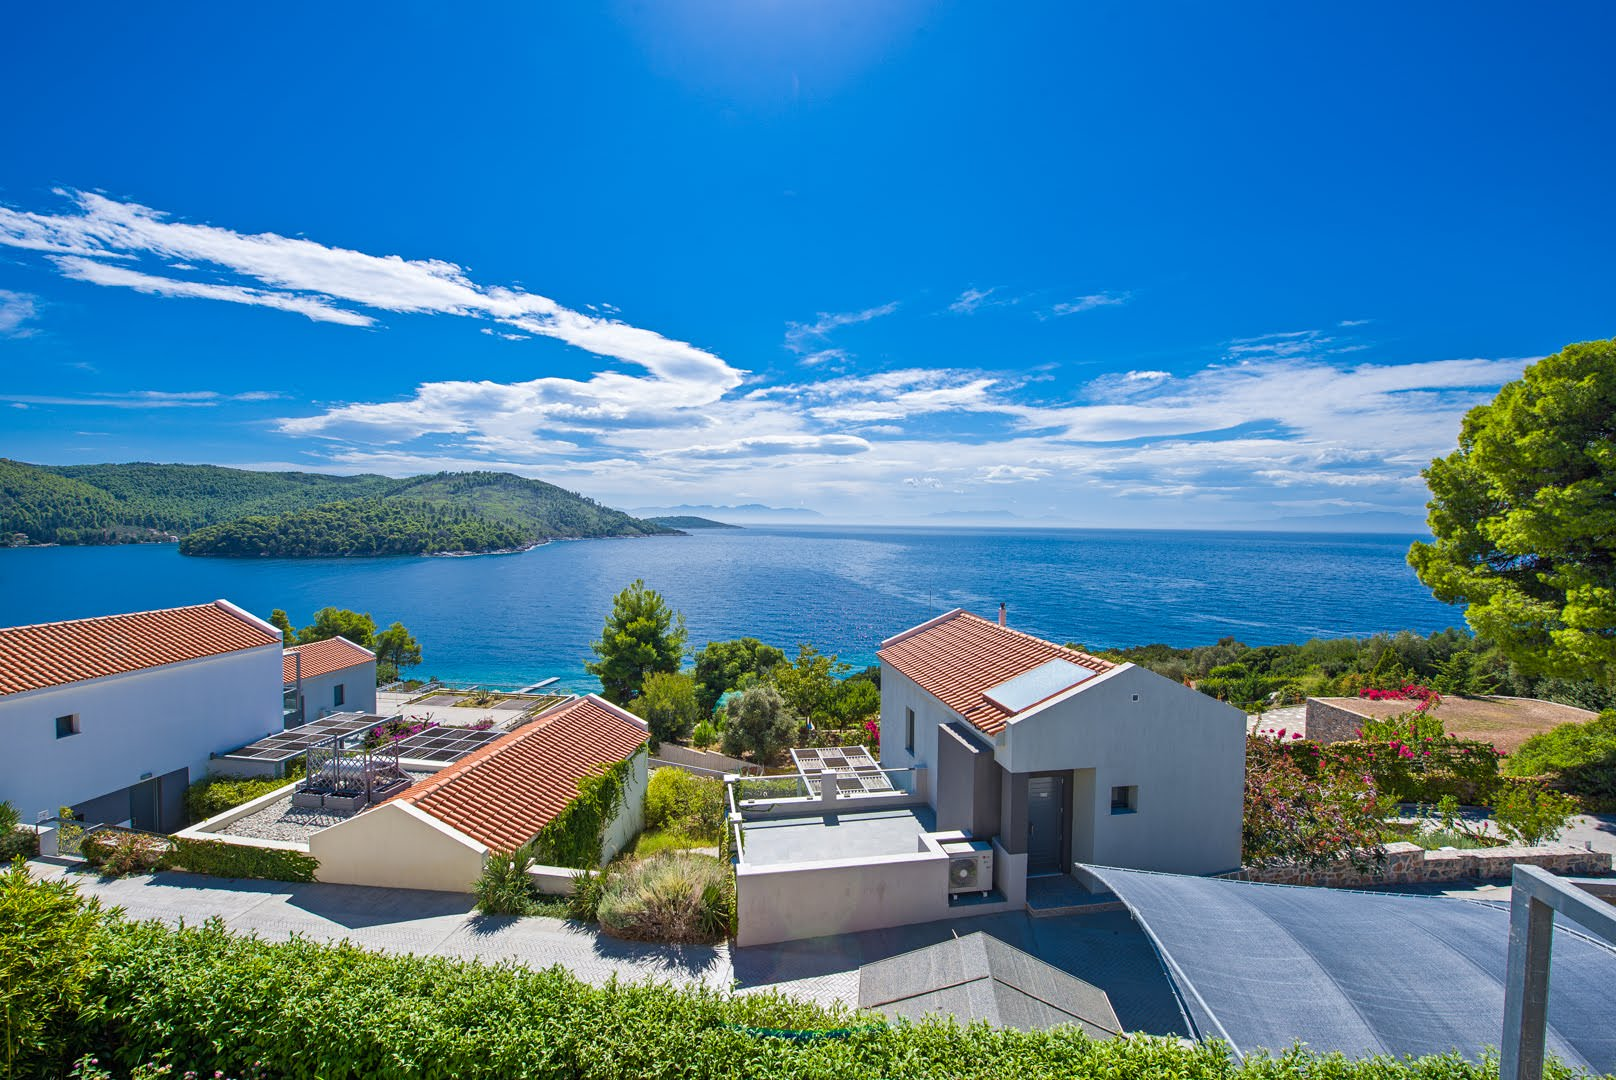 skopelos hotels adrina resort 1 beroom 2 level villa 04.31